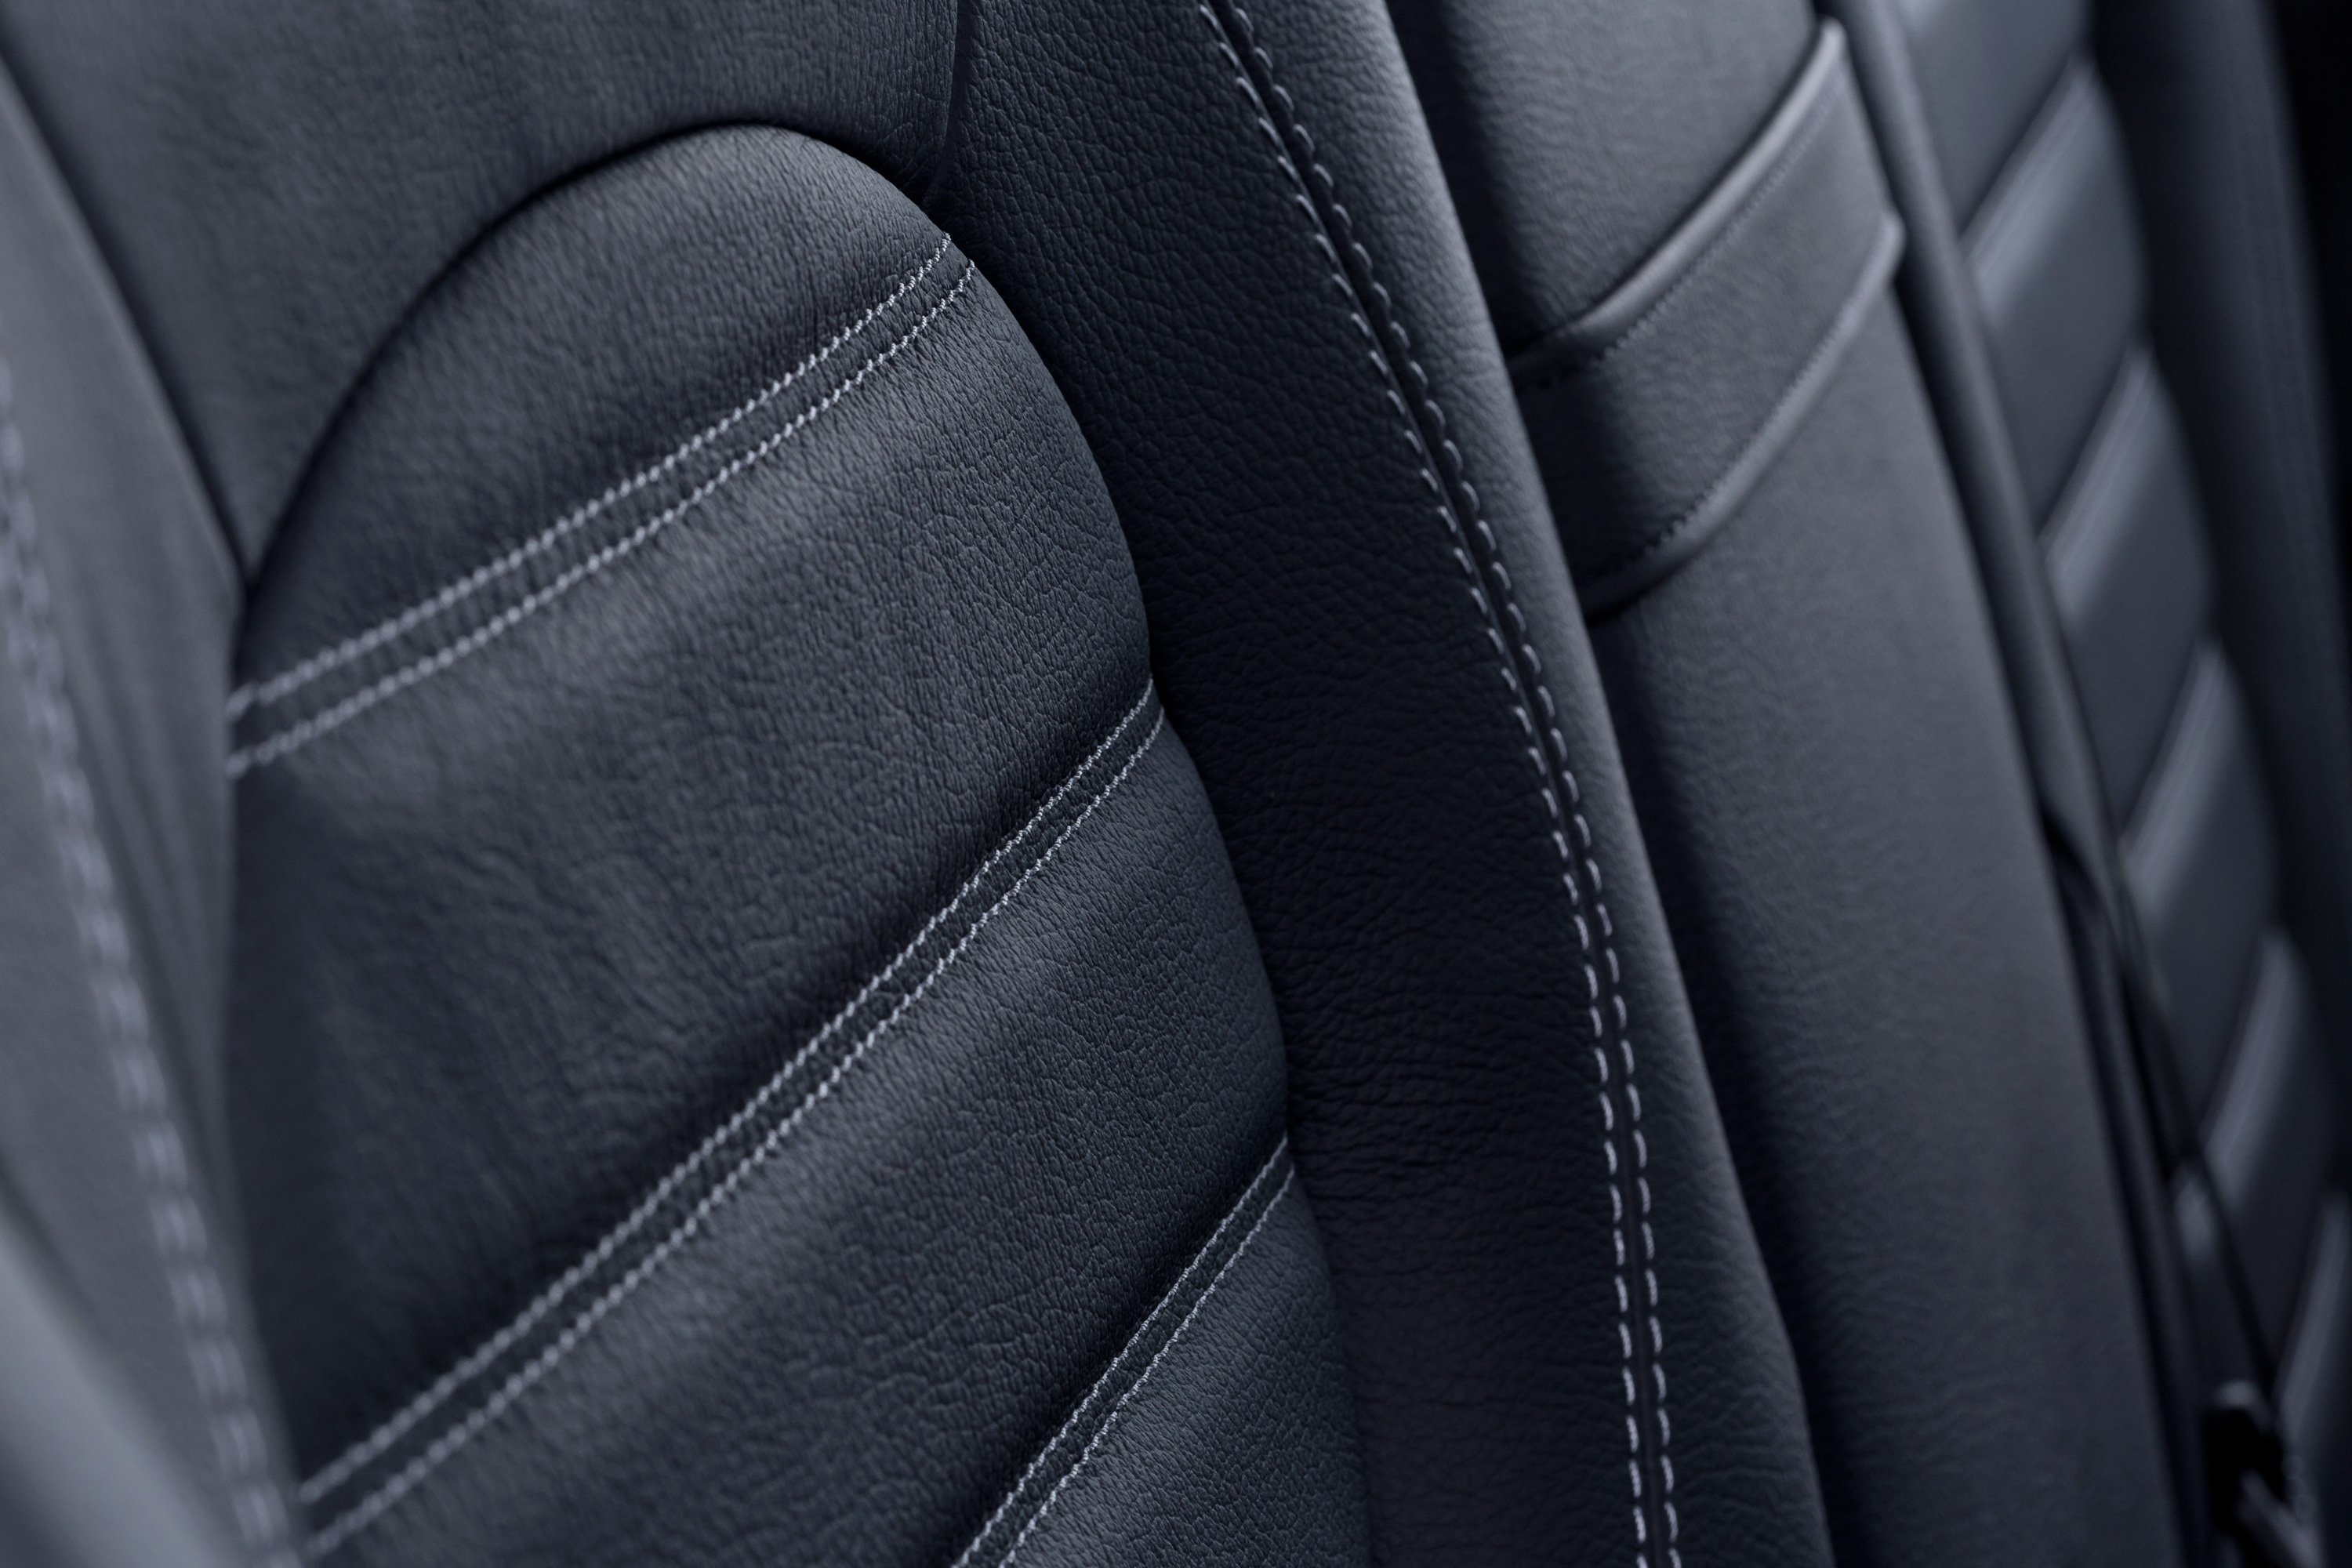 Senses working overtime in automotive interiors